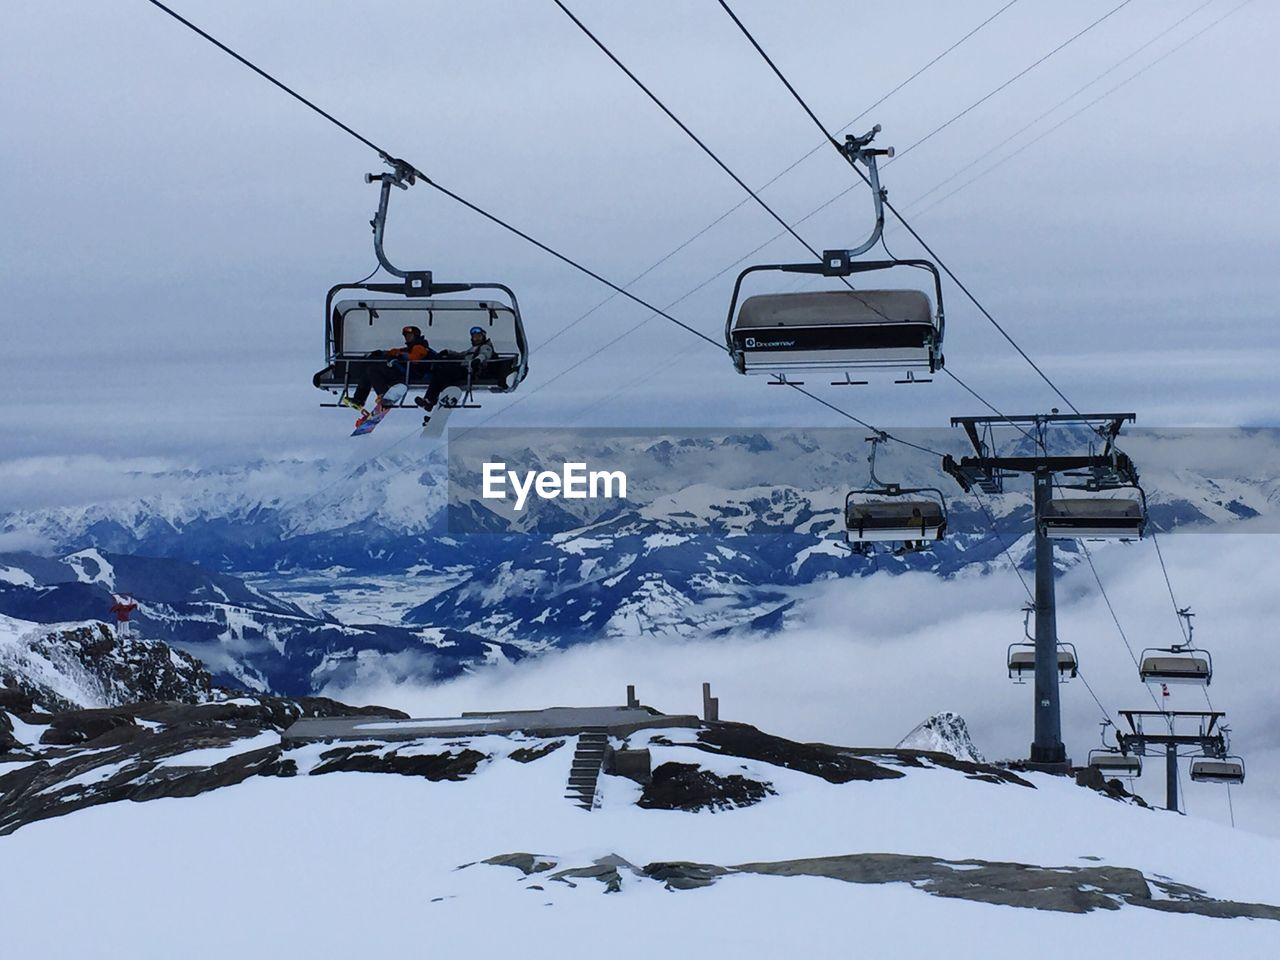 cold temperature, snow, winter, weather, transportation, nature, overhead cable car, ski lift, cable, sky, mountain, beauty in nature, scenics, day, adventure, snowcapped mountain, mode of transport, frozen, outdoors, cloud - sky, hanging, real people, technology